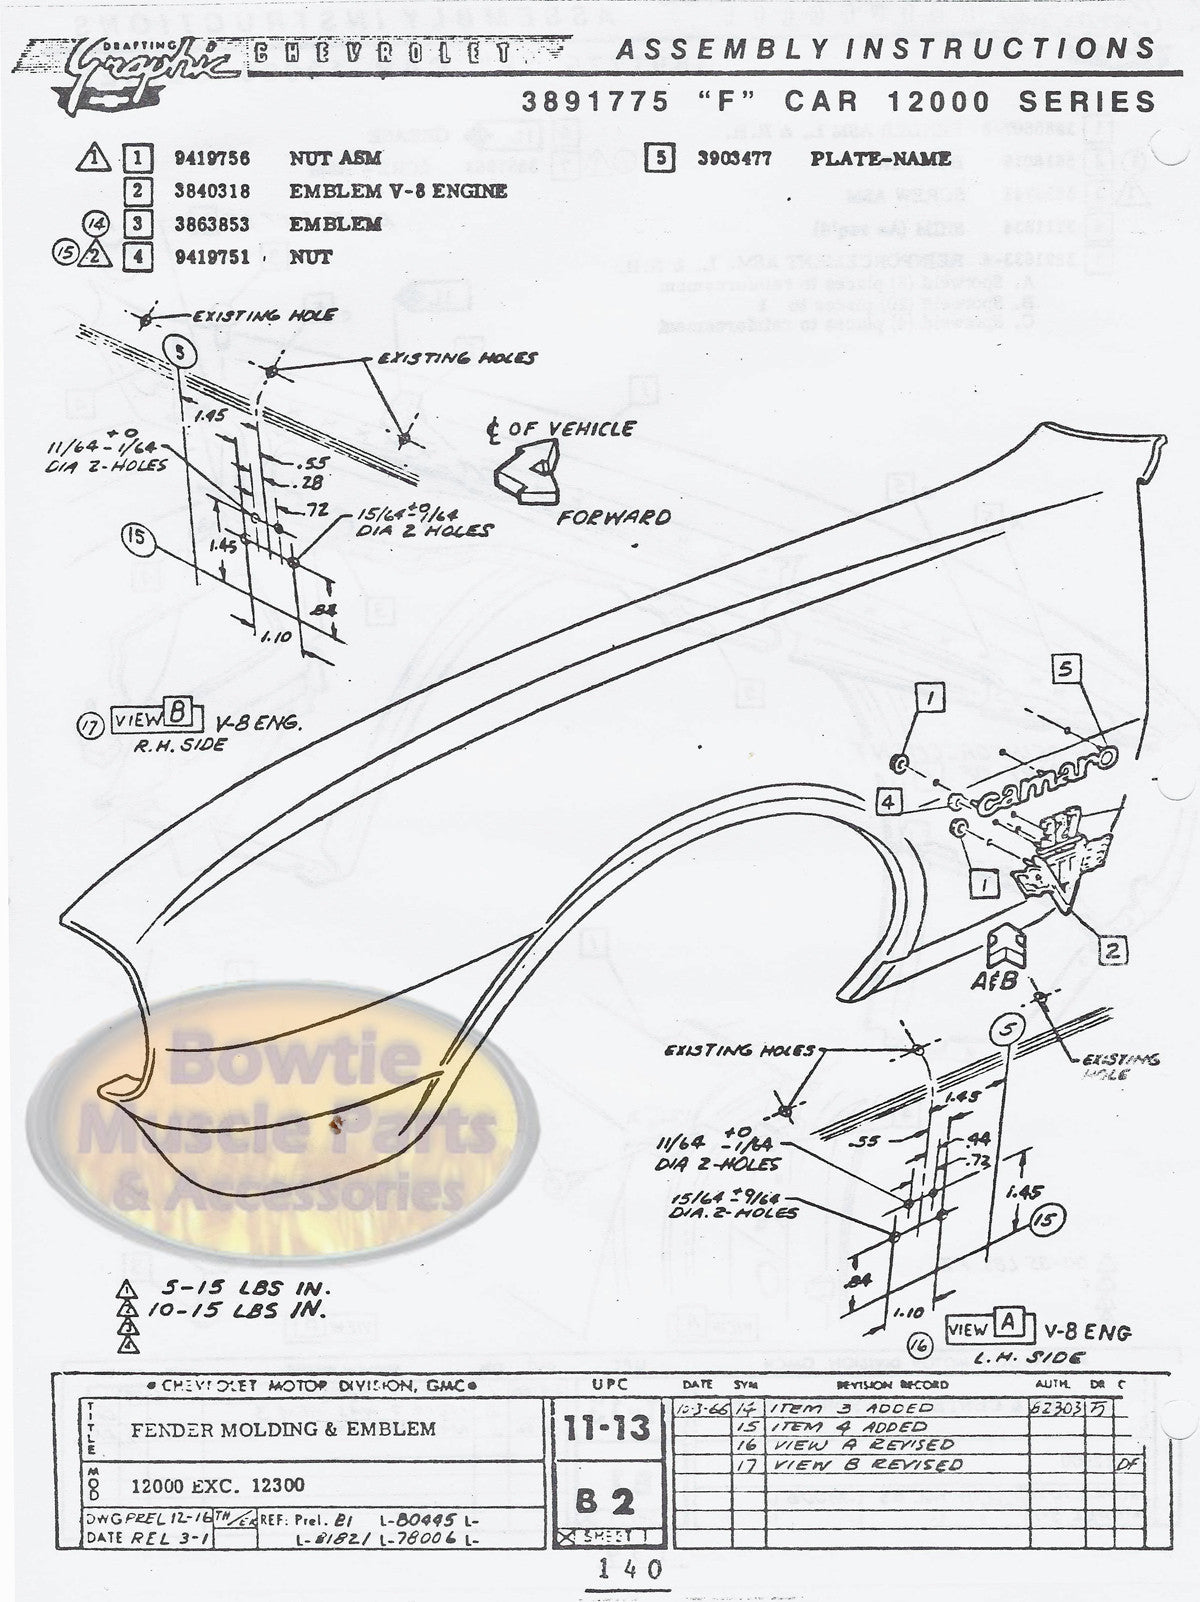 1969 69 camaro factory assembly manual z28 ss rs 488 pages rh bowtiemuscleparts com 67 Camaro 69 camaro assembly manual download